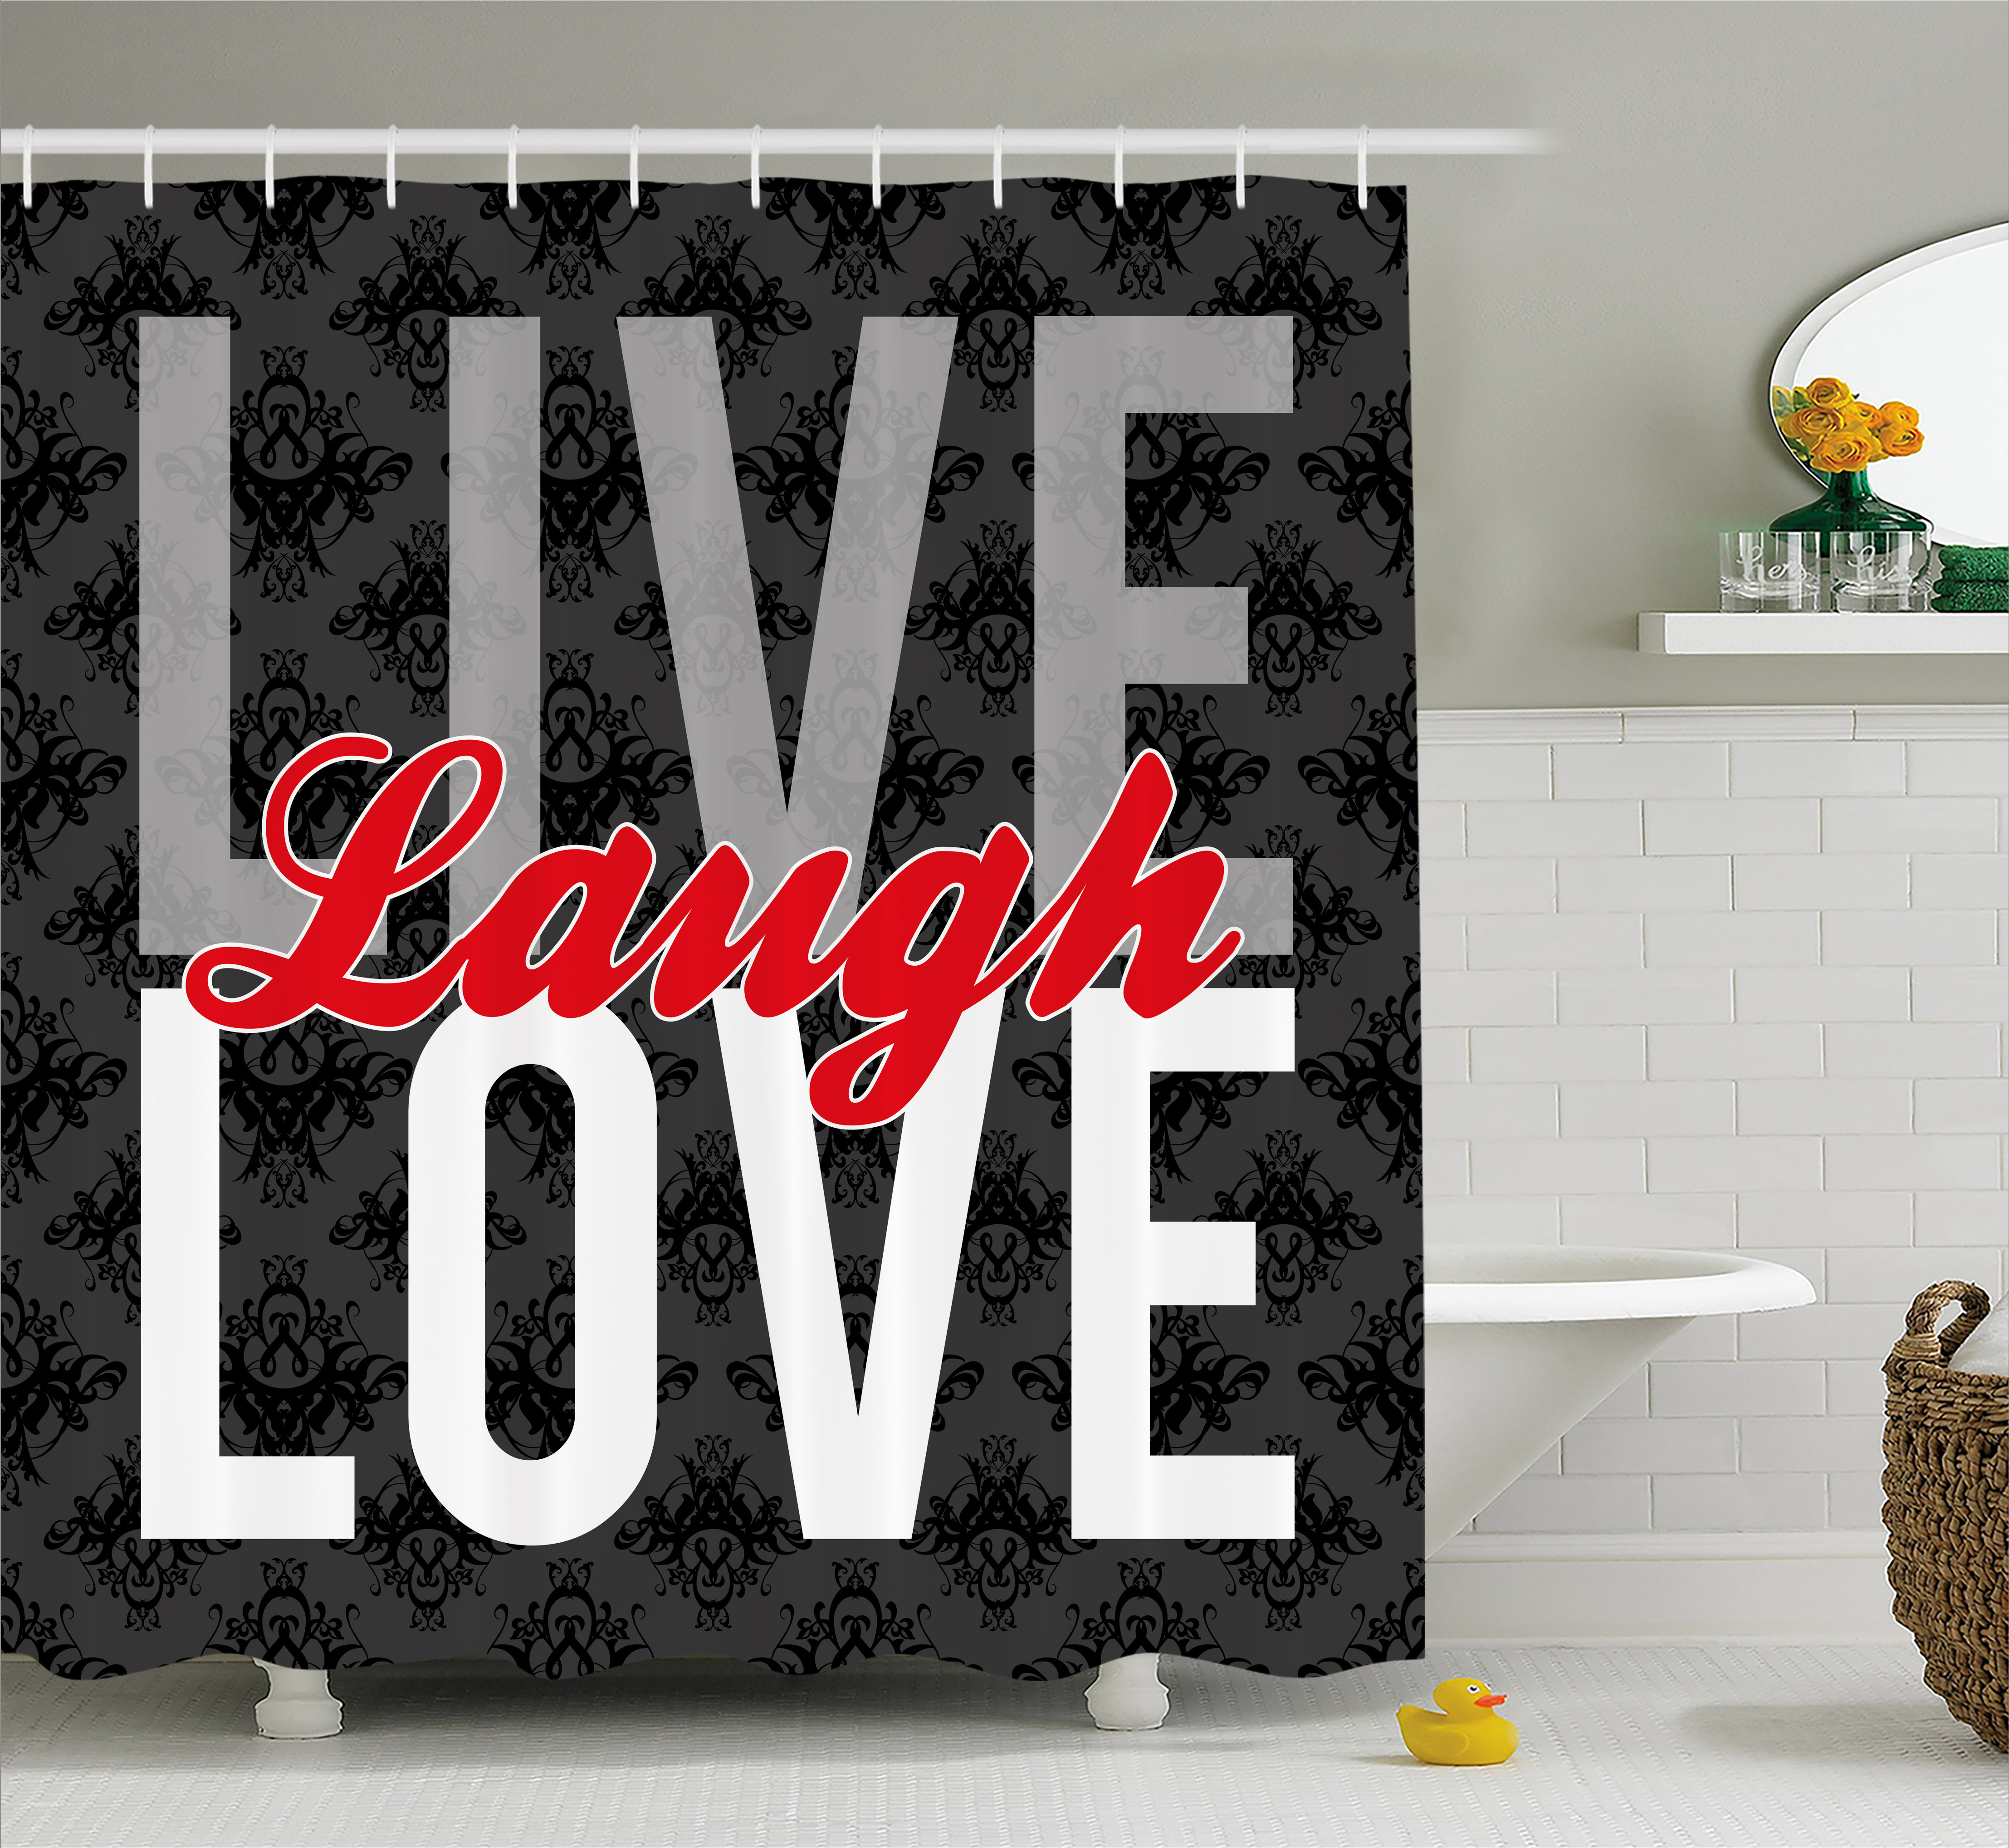 Live Laugh Love Decor Shower Curtain, Different Typed Words of Wisdom Victorian Antique Damask Motifs Tile, Fabric Bathroom Set with Hooks, 69W X 70L Inches, Multicolor, by Ambesonne